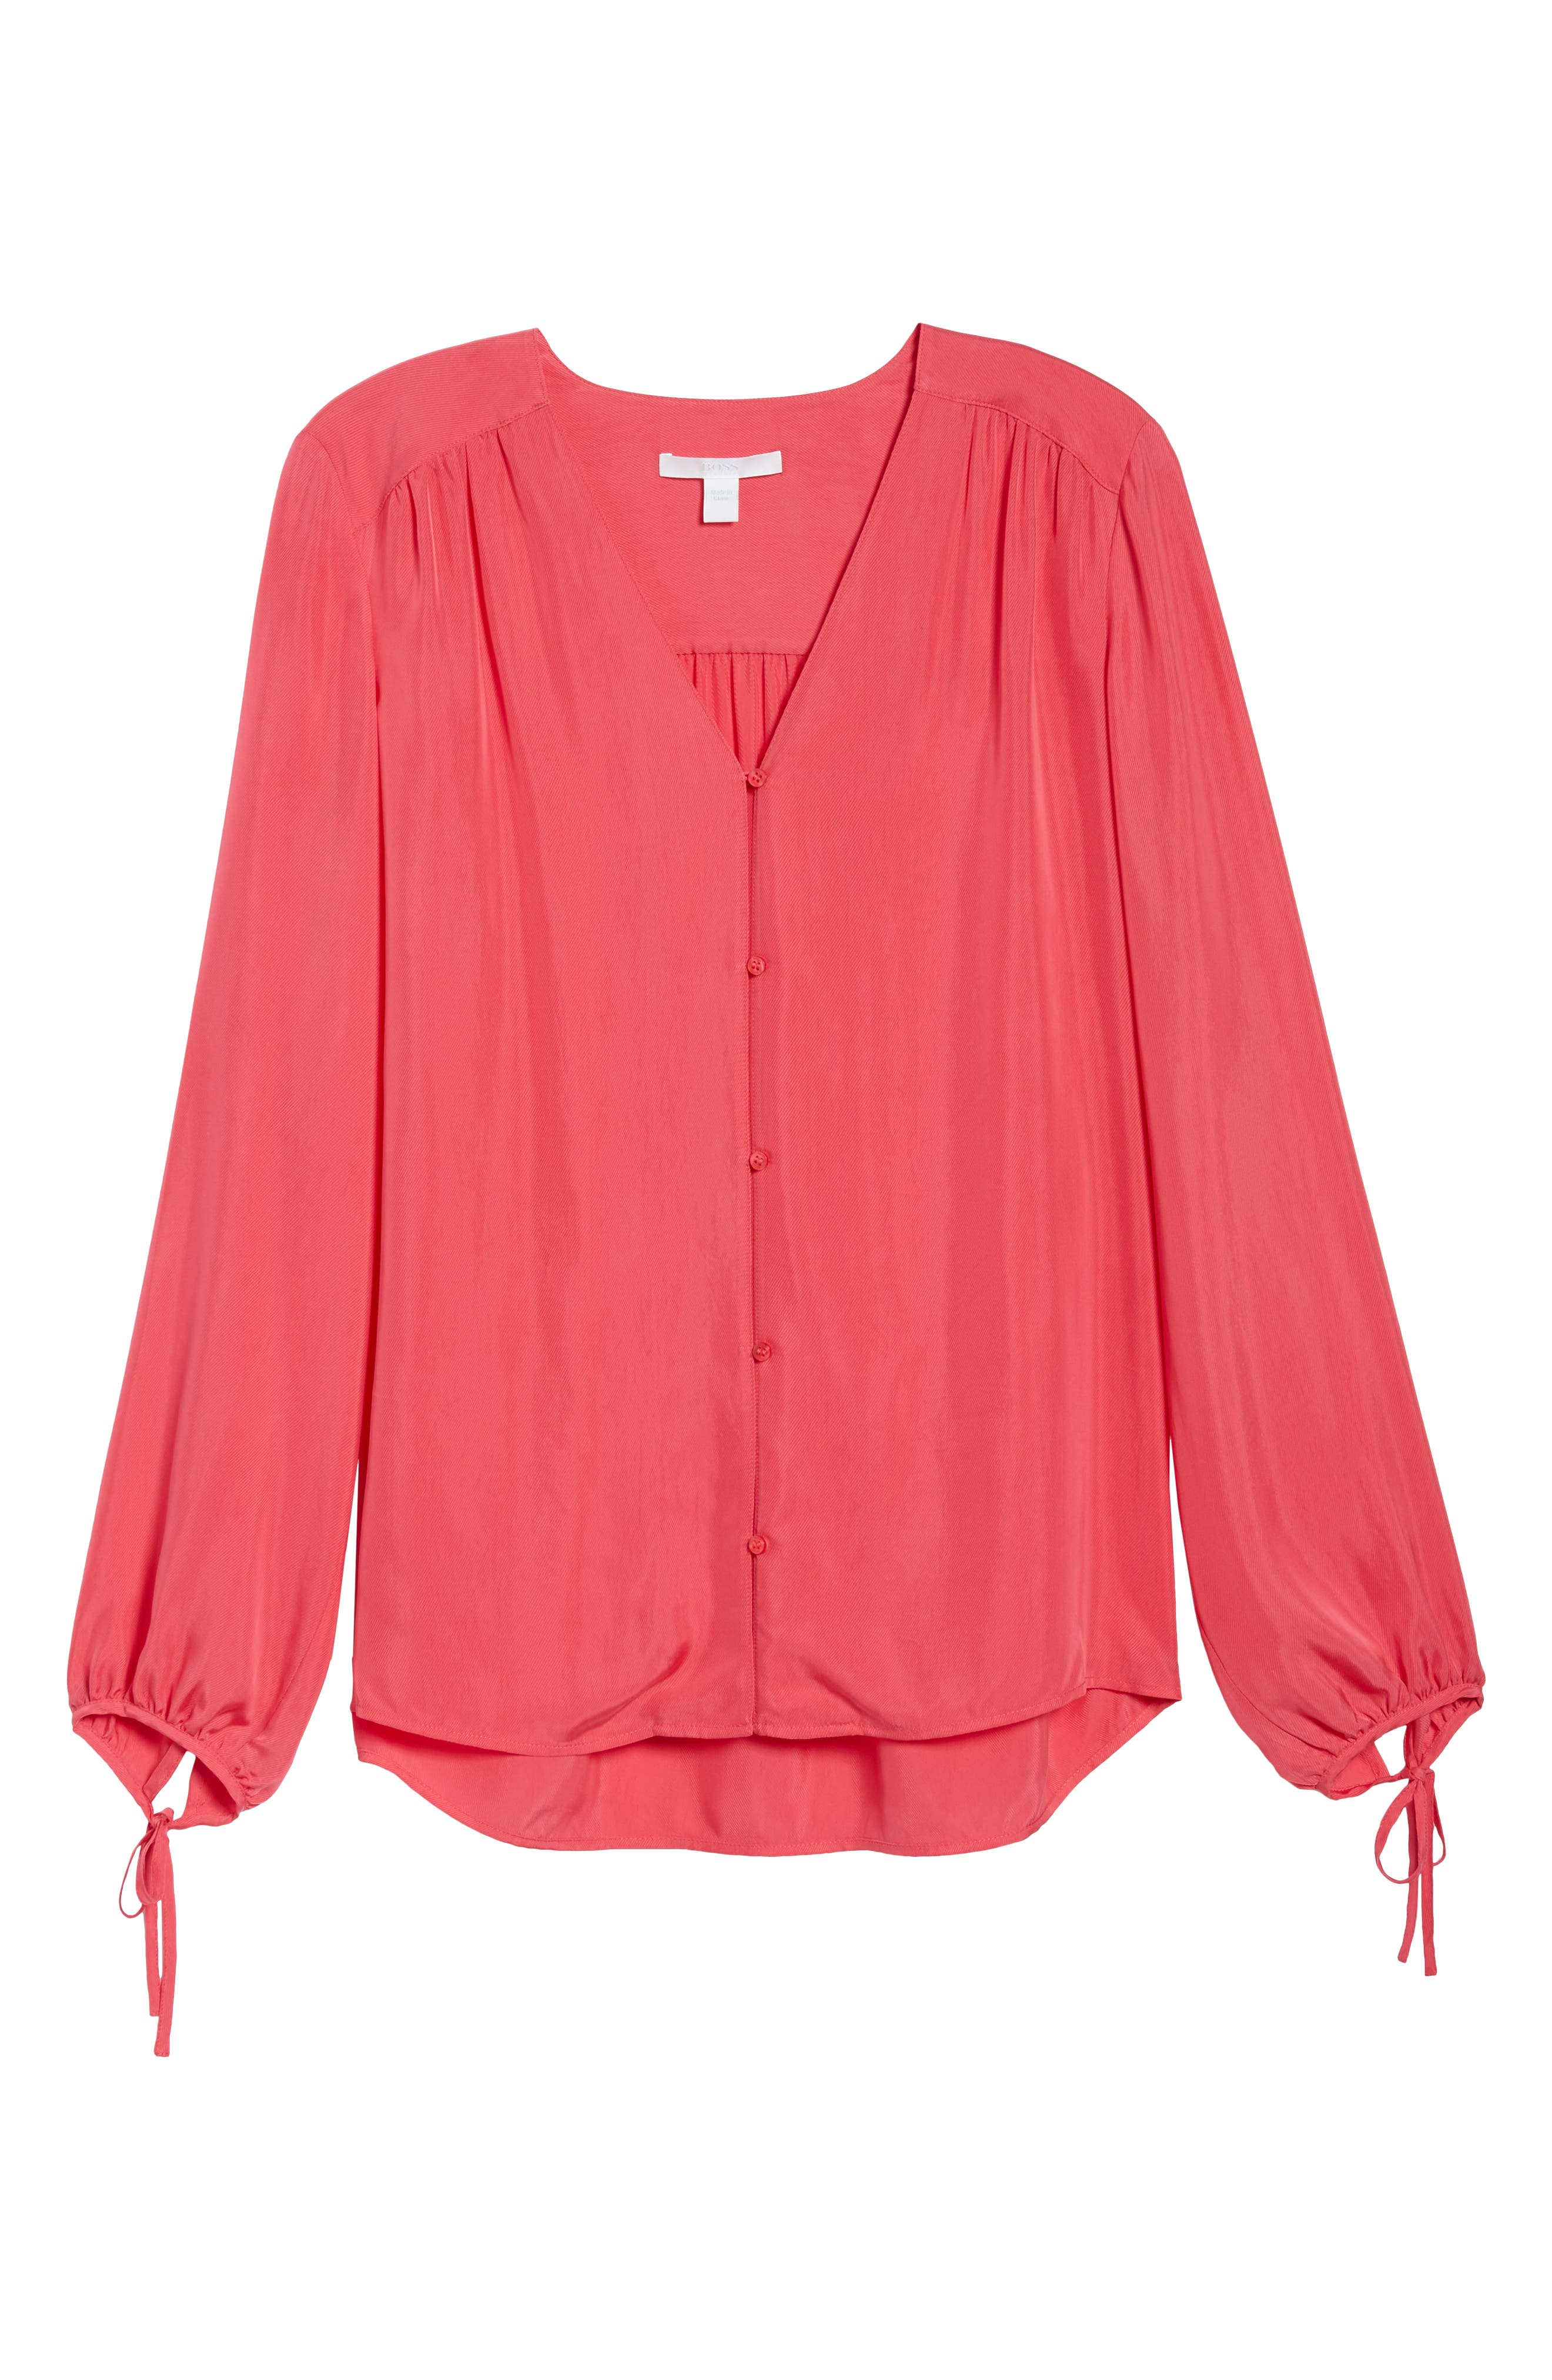 Rosalia Blouse,                             Alternate thumbnail 6, color,